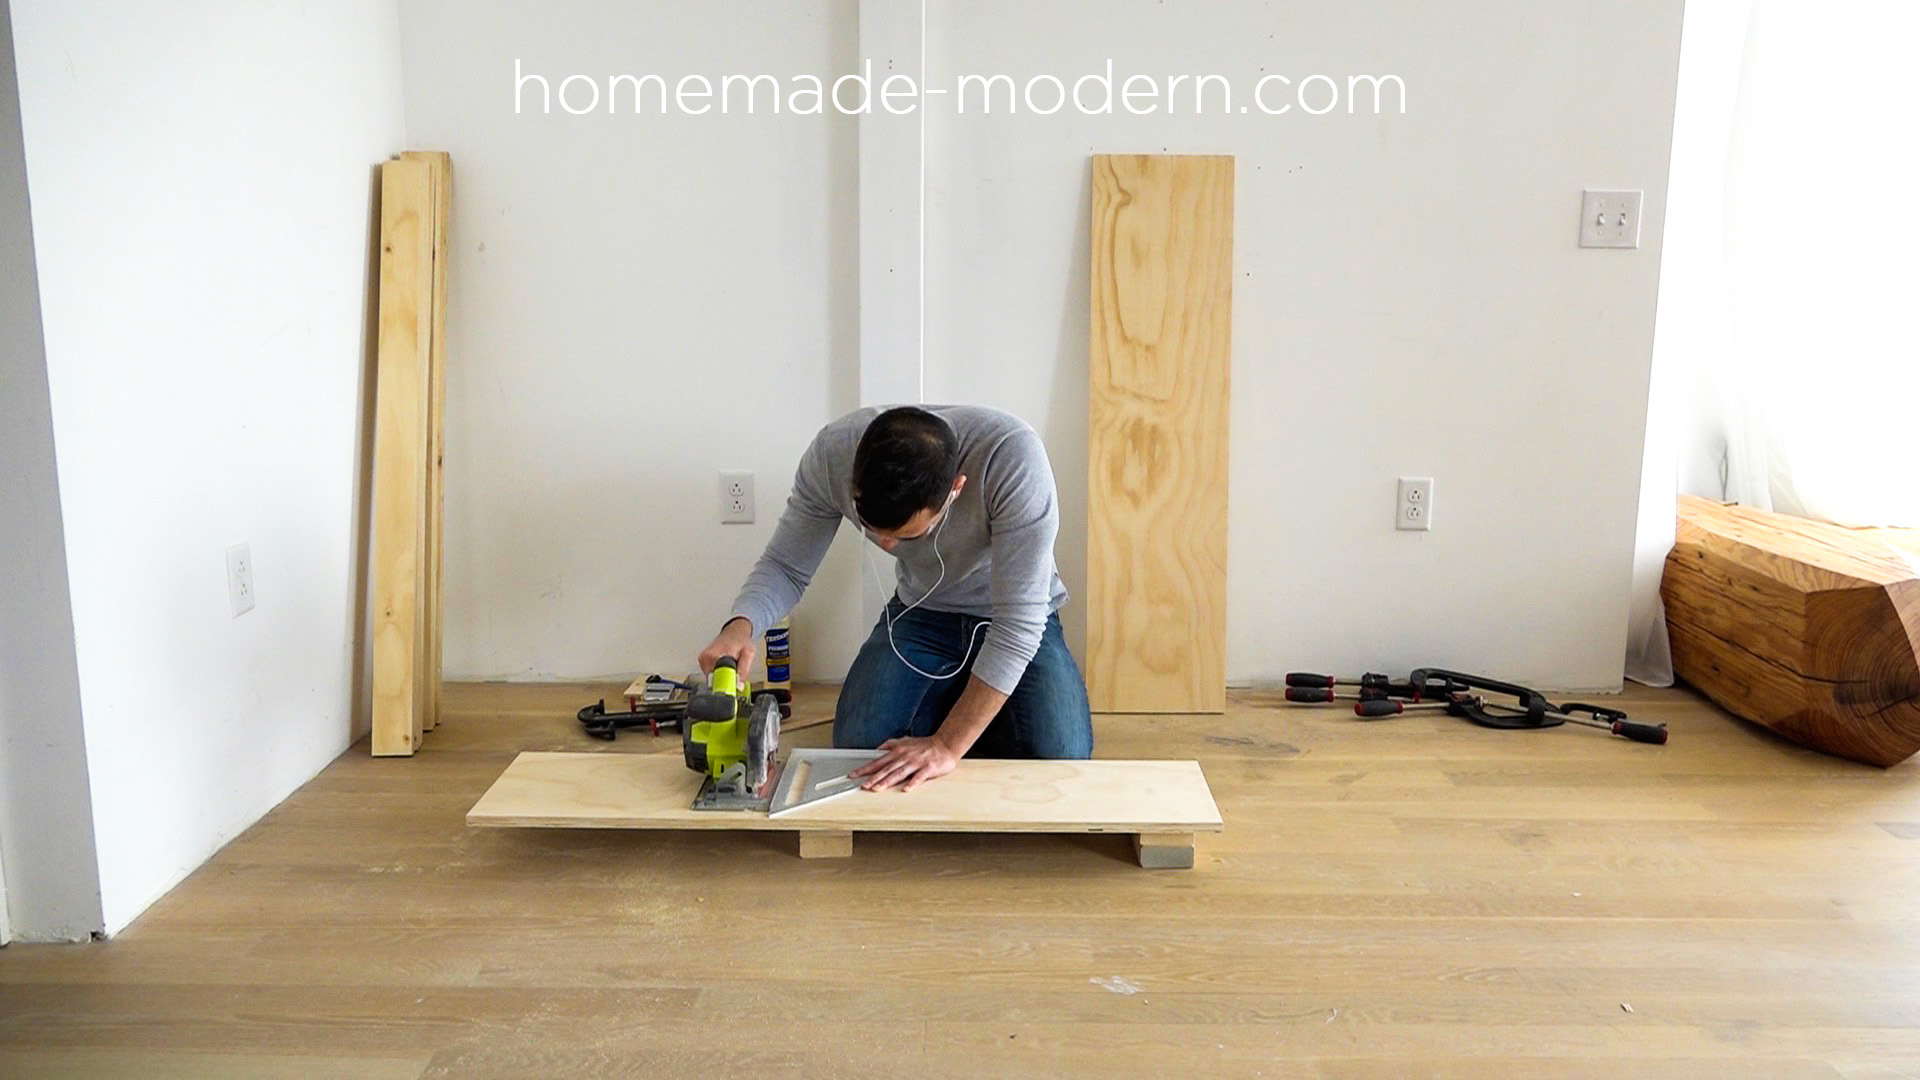 This DIY modern plywood sofa is made out of 2 1 2  sheets HomeMade Modern. HomeMade Modern EP111 Plywood Table